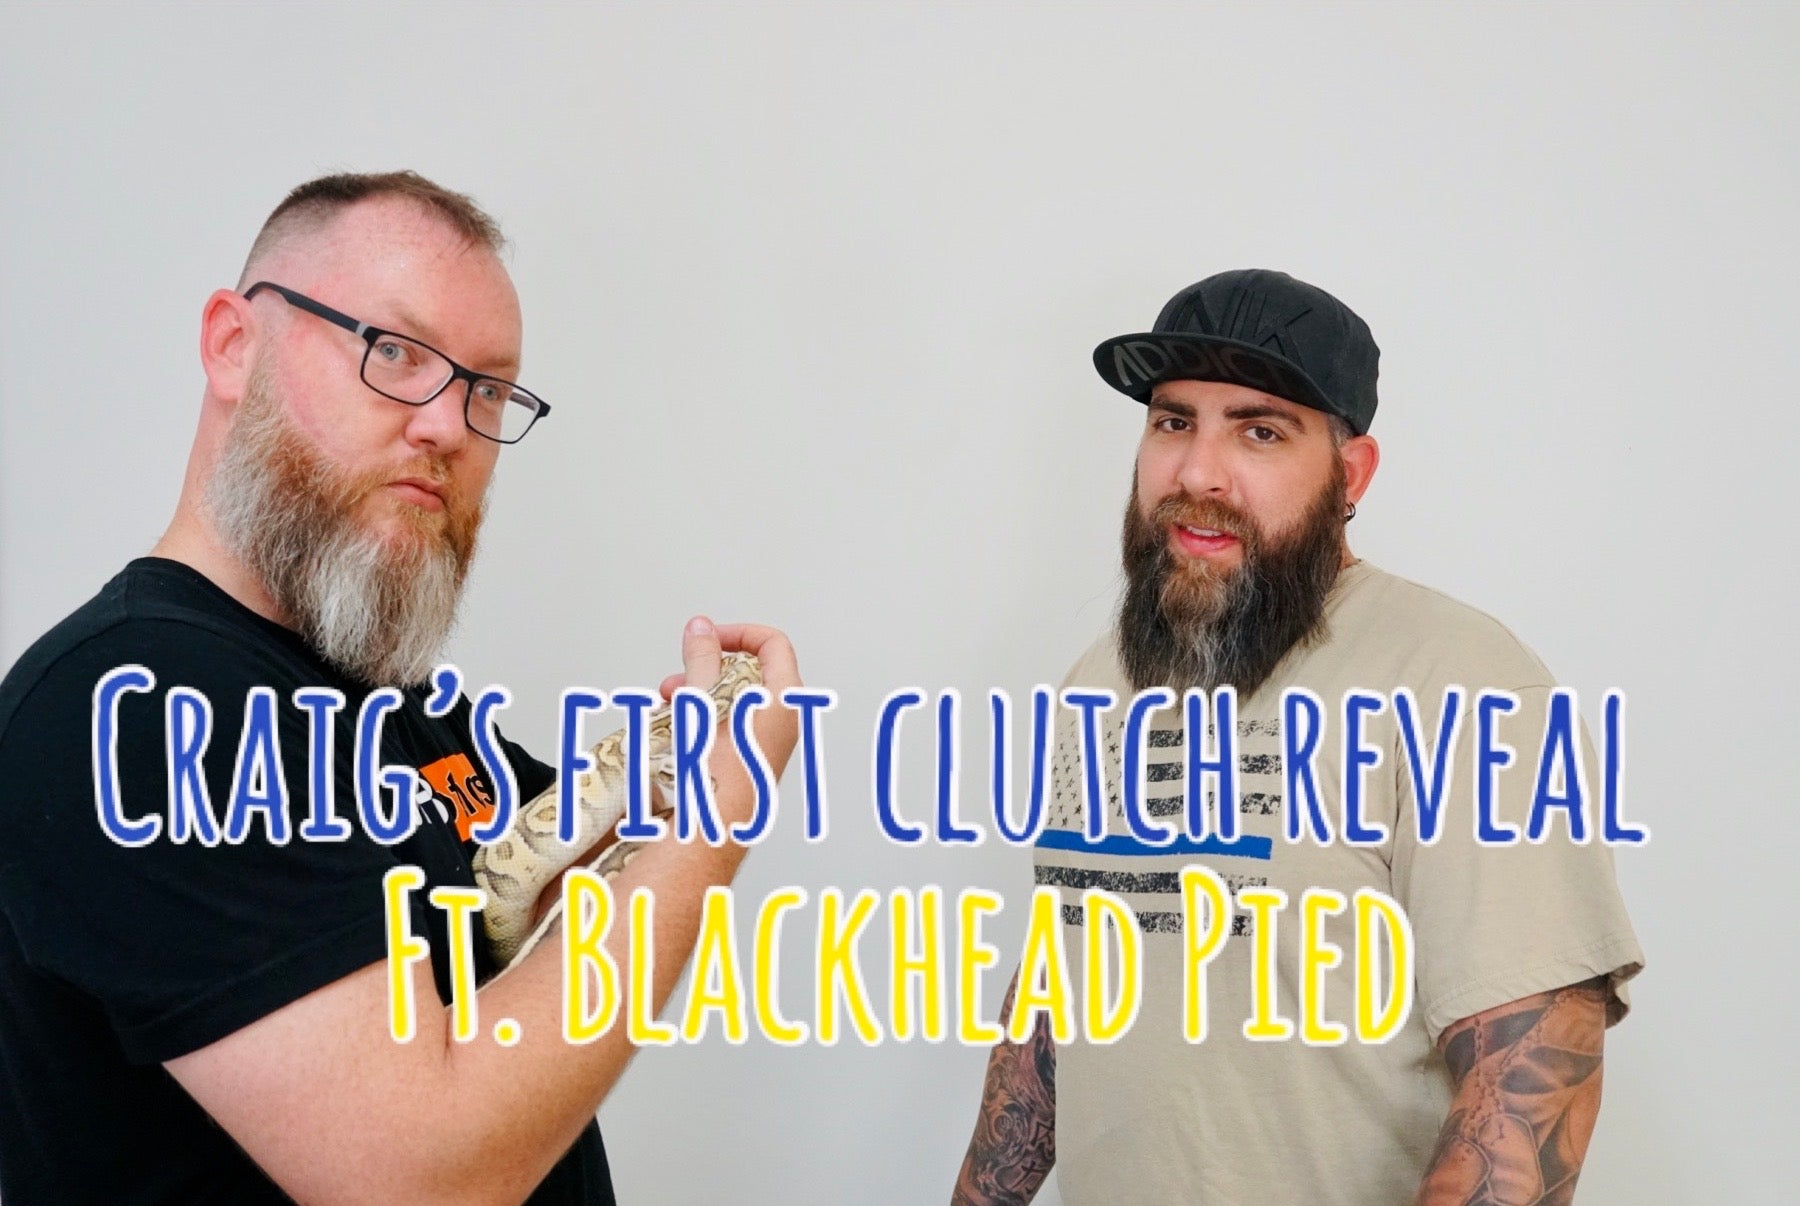 Craig's first clutch reveal - special guest Blackhead Pied